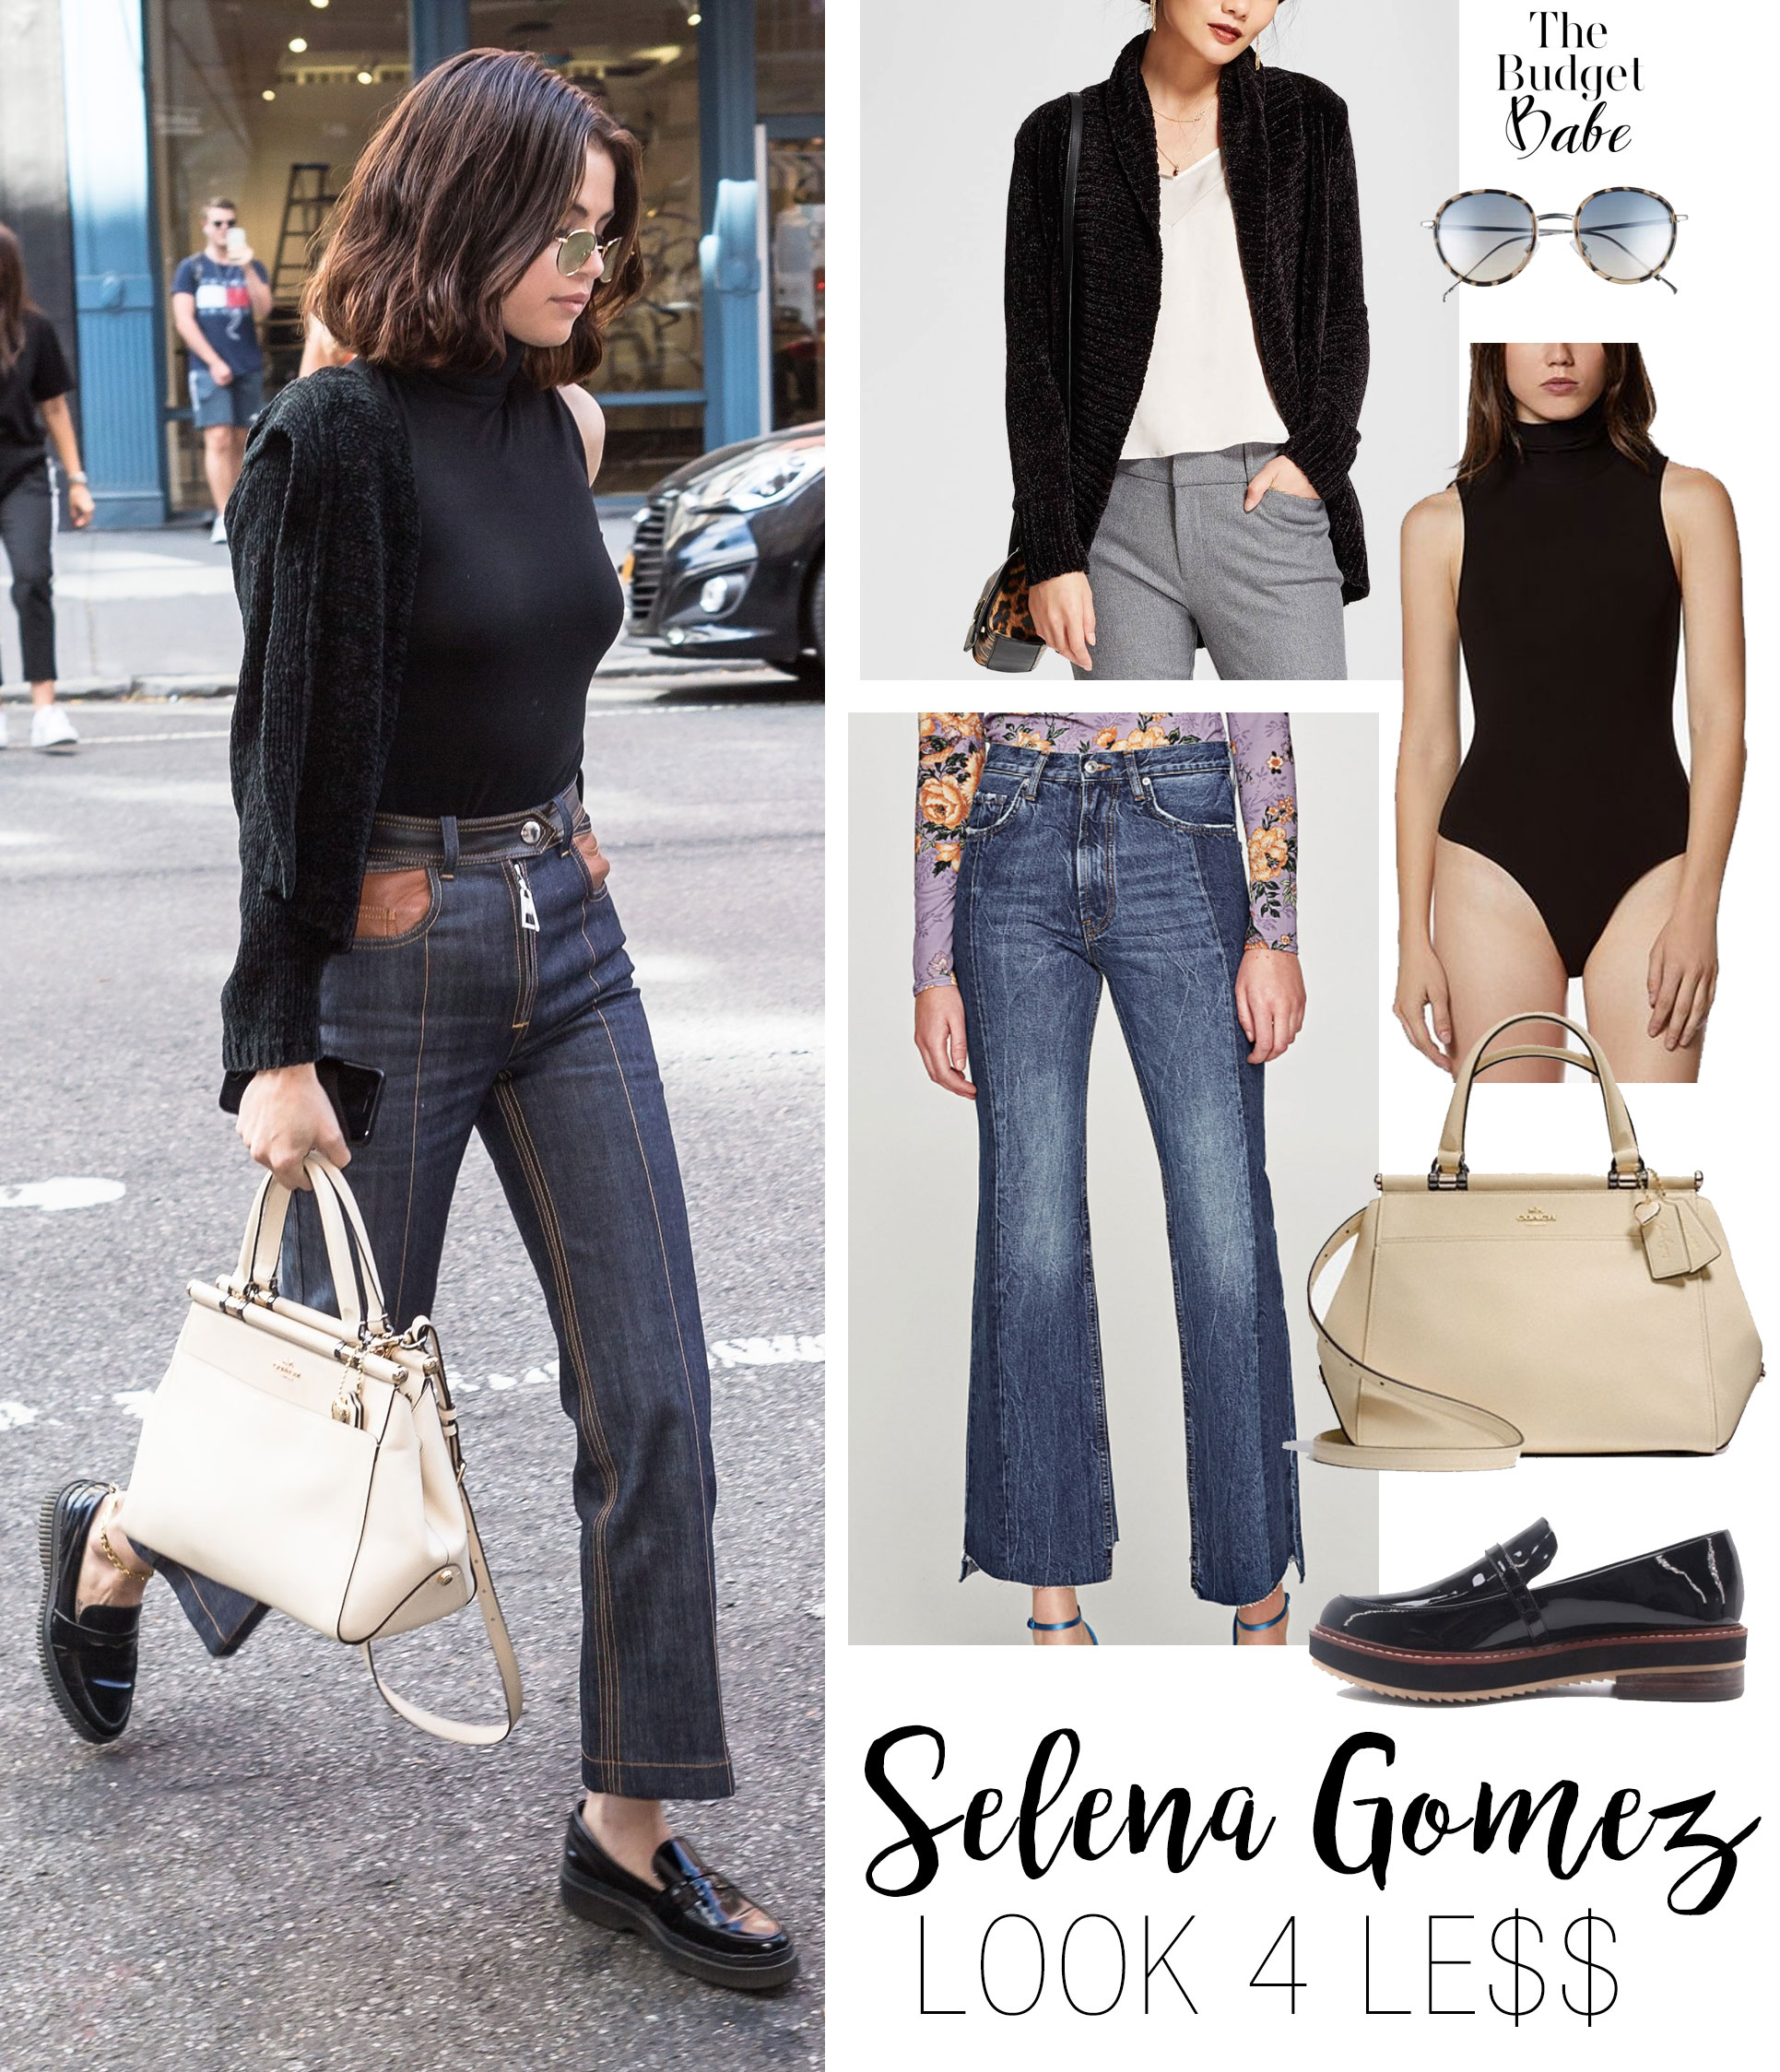 Selena Gomez celebrity look for less black turtleneck chenille sweater loafers